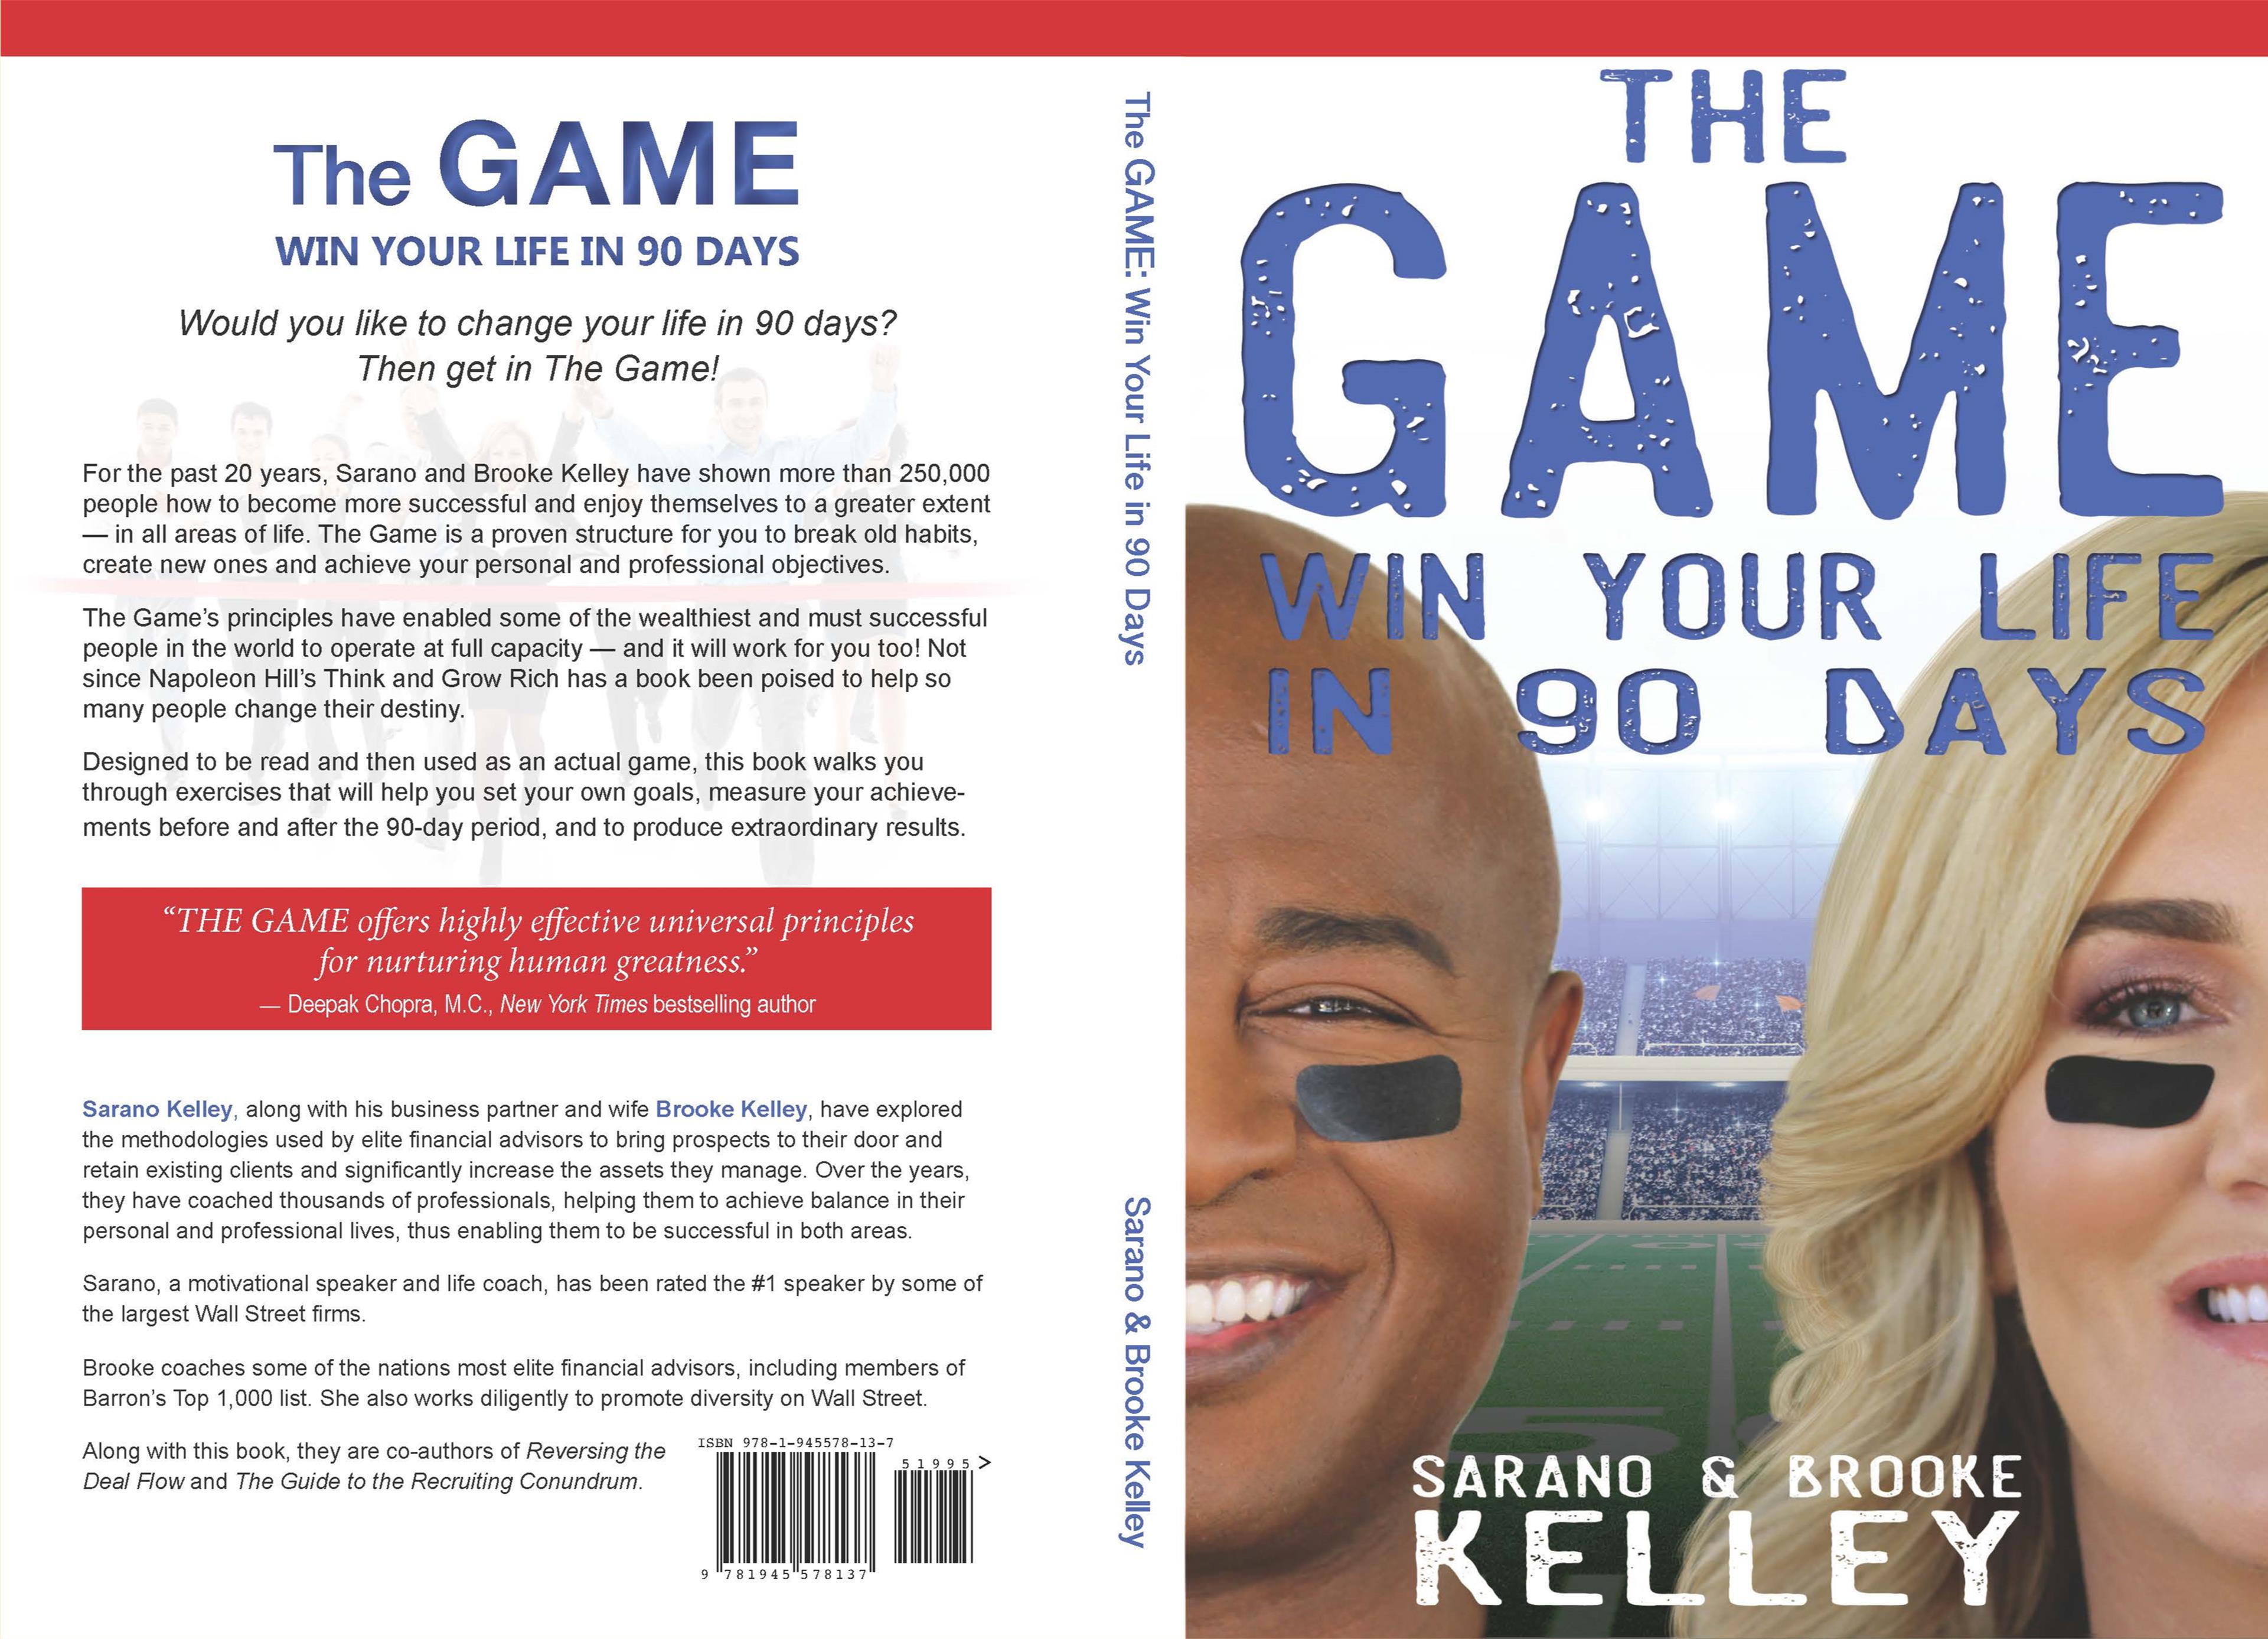 The Game: Win Your Life in 90 Days cover image